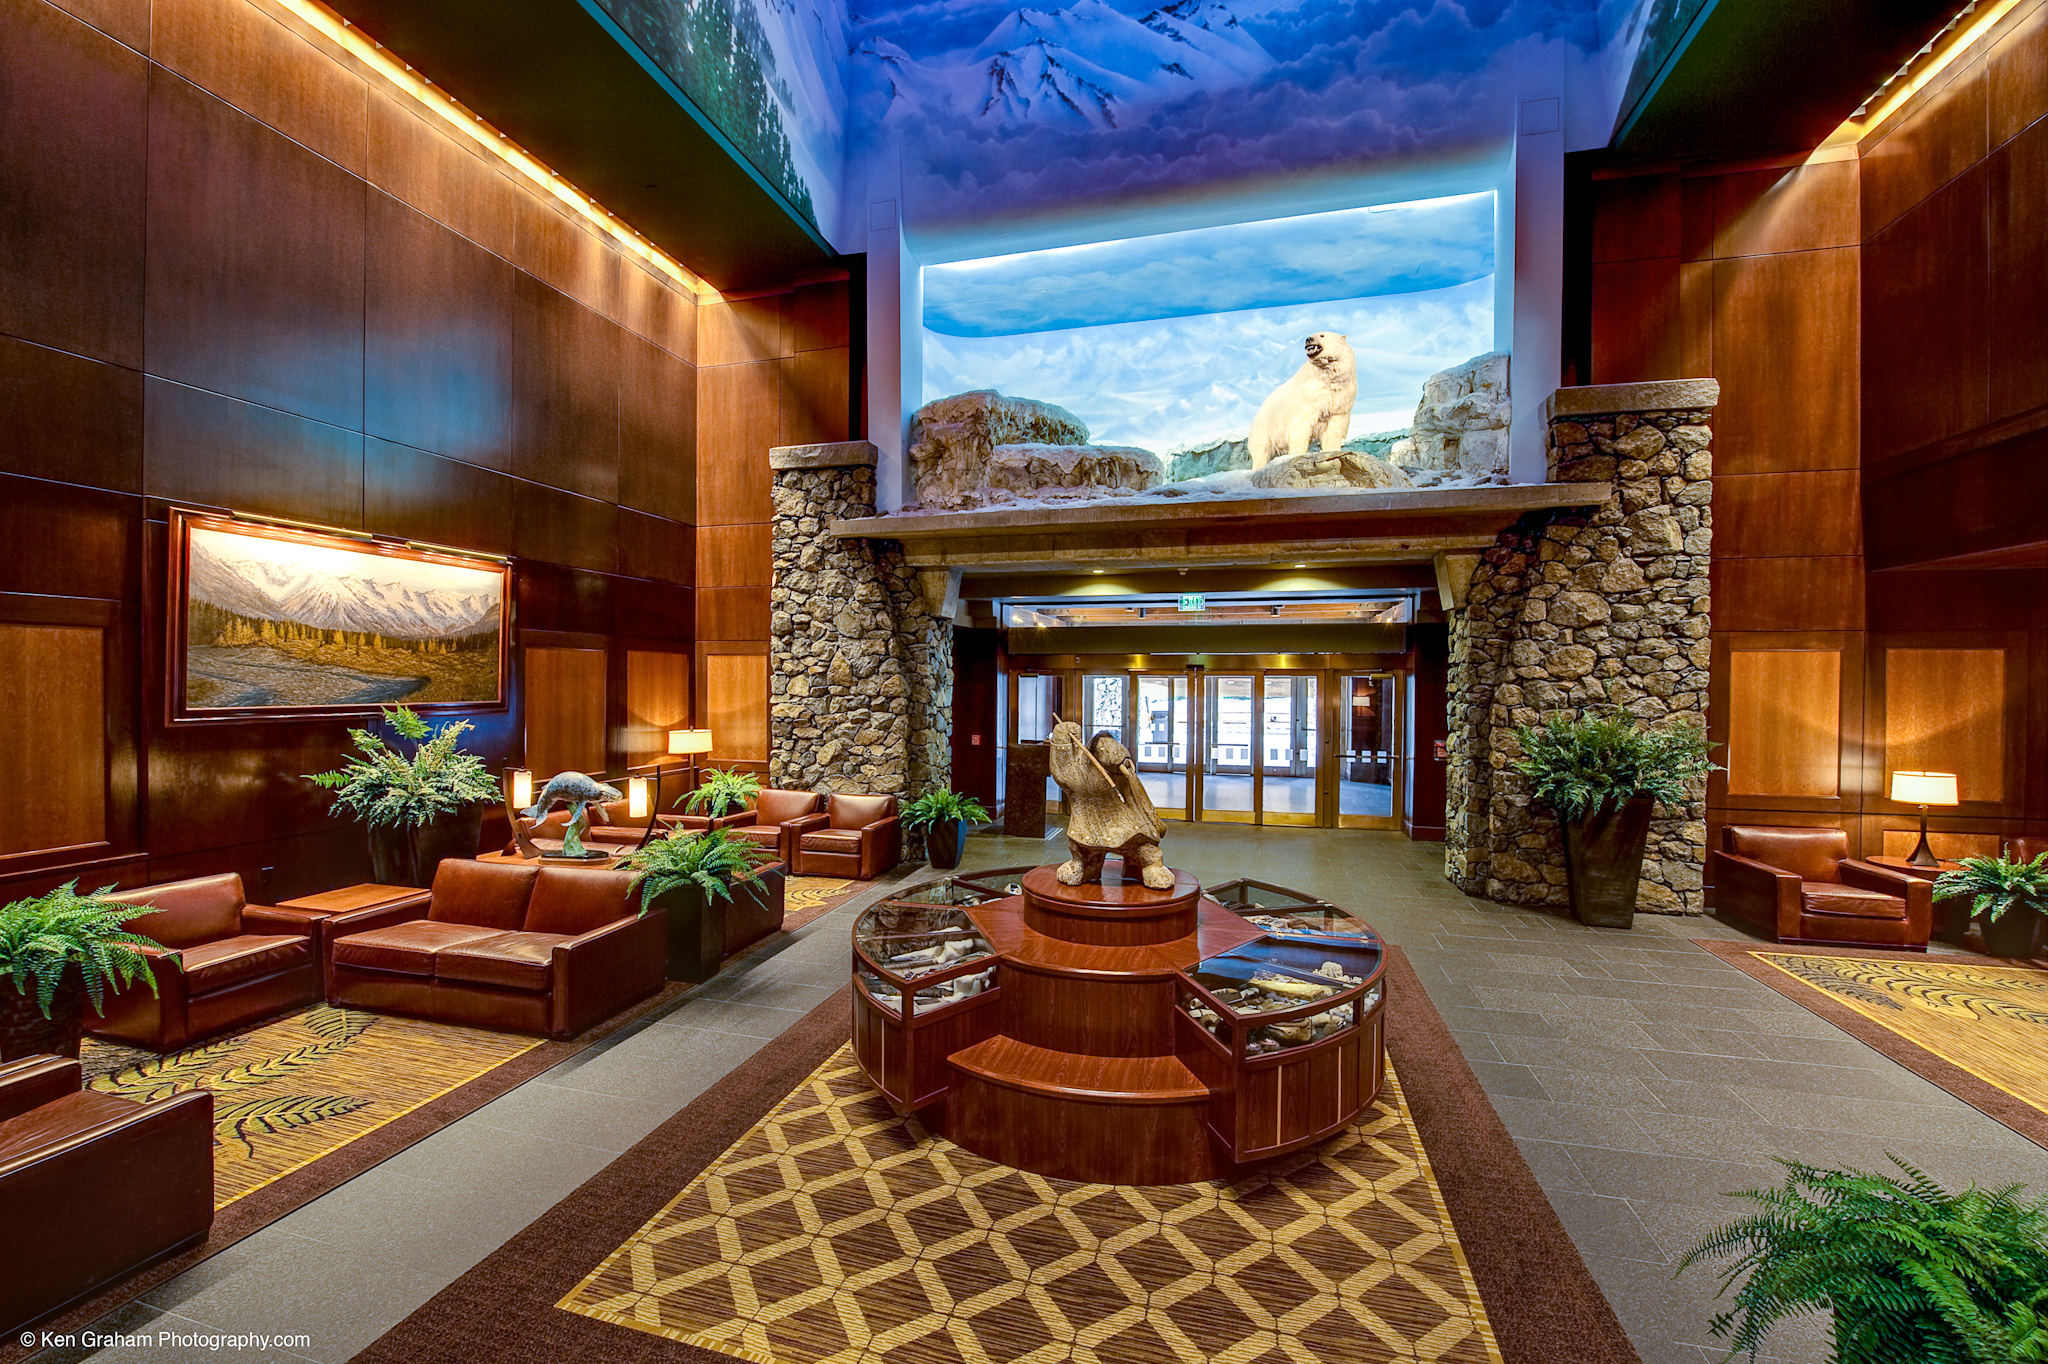 Best luxury hotels in alaska top 10 page 9 of 10 for Great luxury hotels